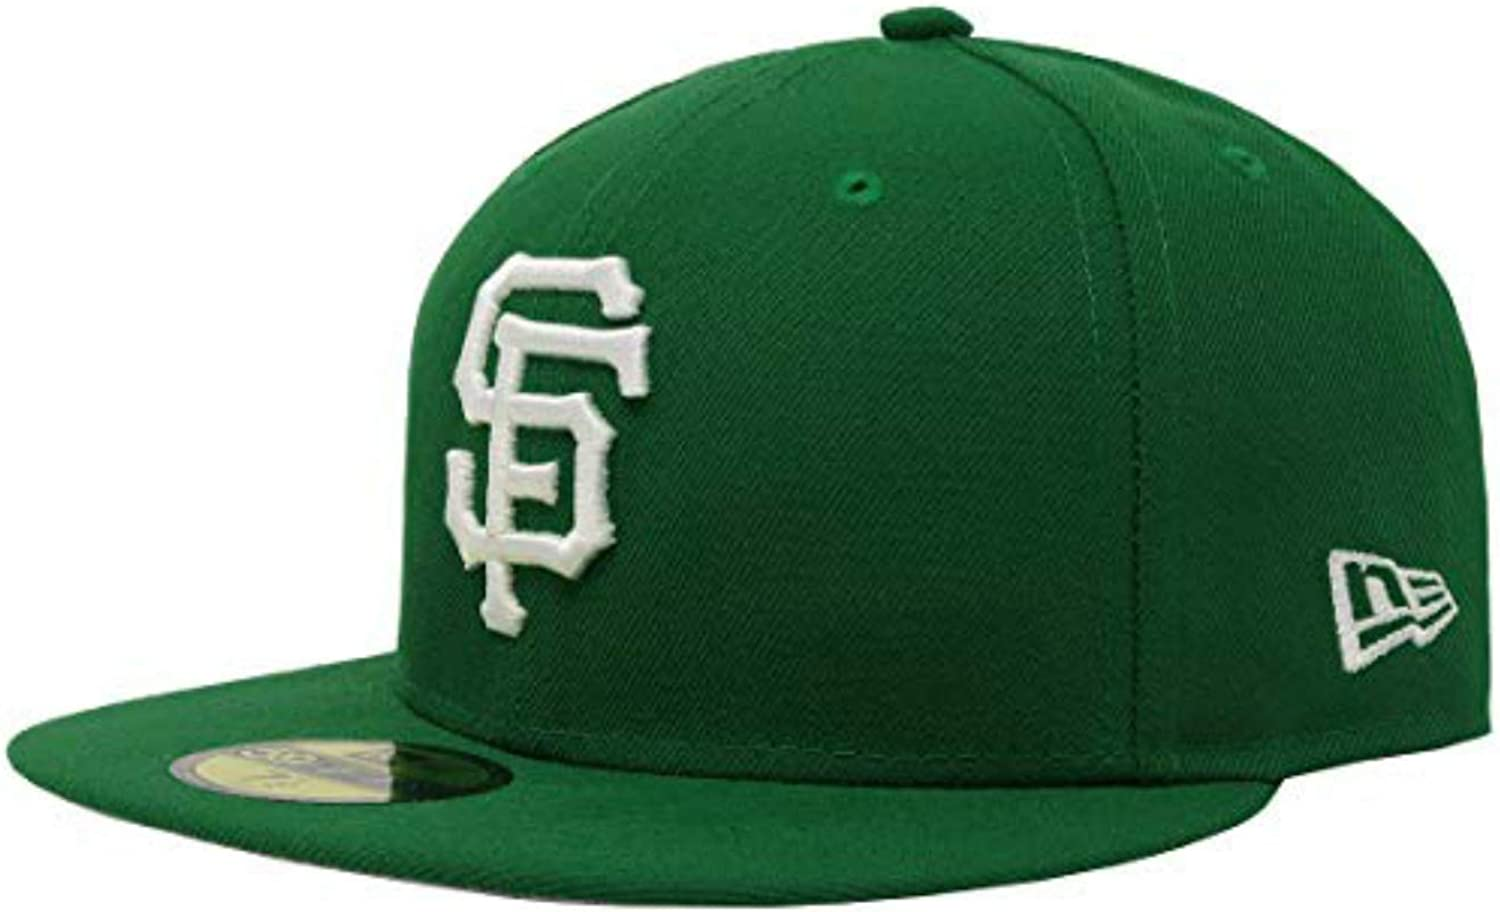 San Francisco Giants Fitted Size 6 7/8 Hat Cap - Green